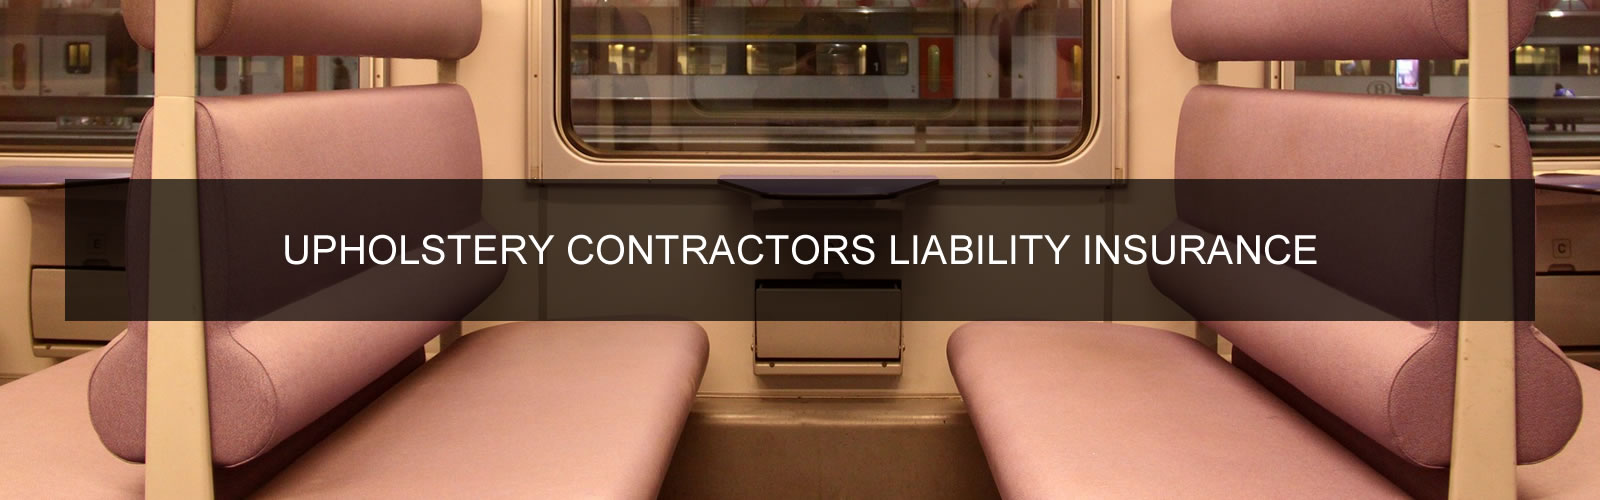 Upholstery Contractors Liability Insurance